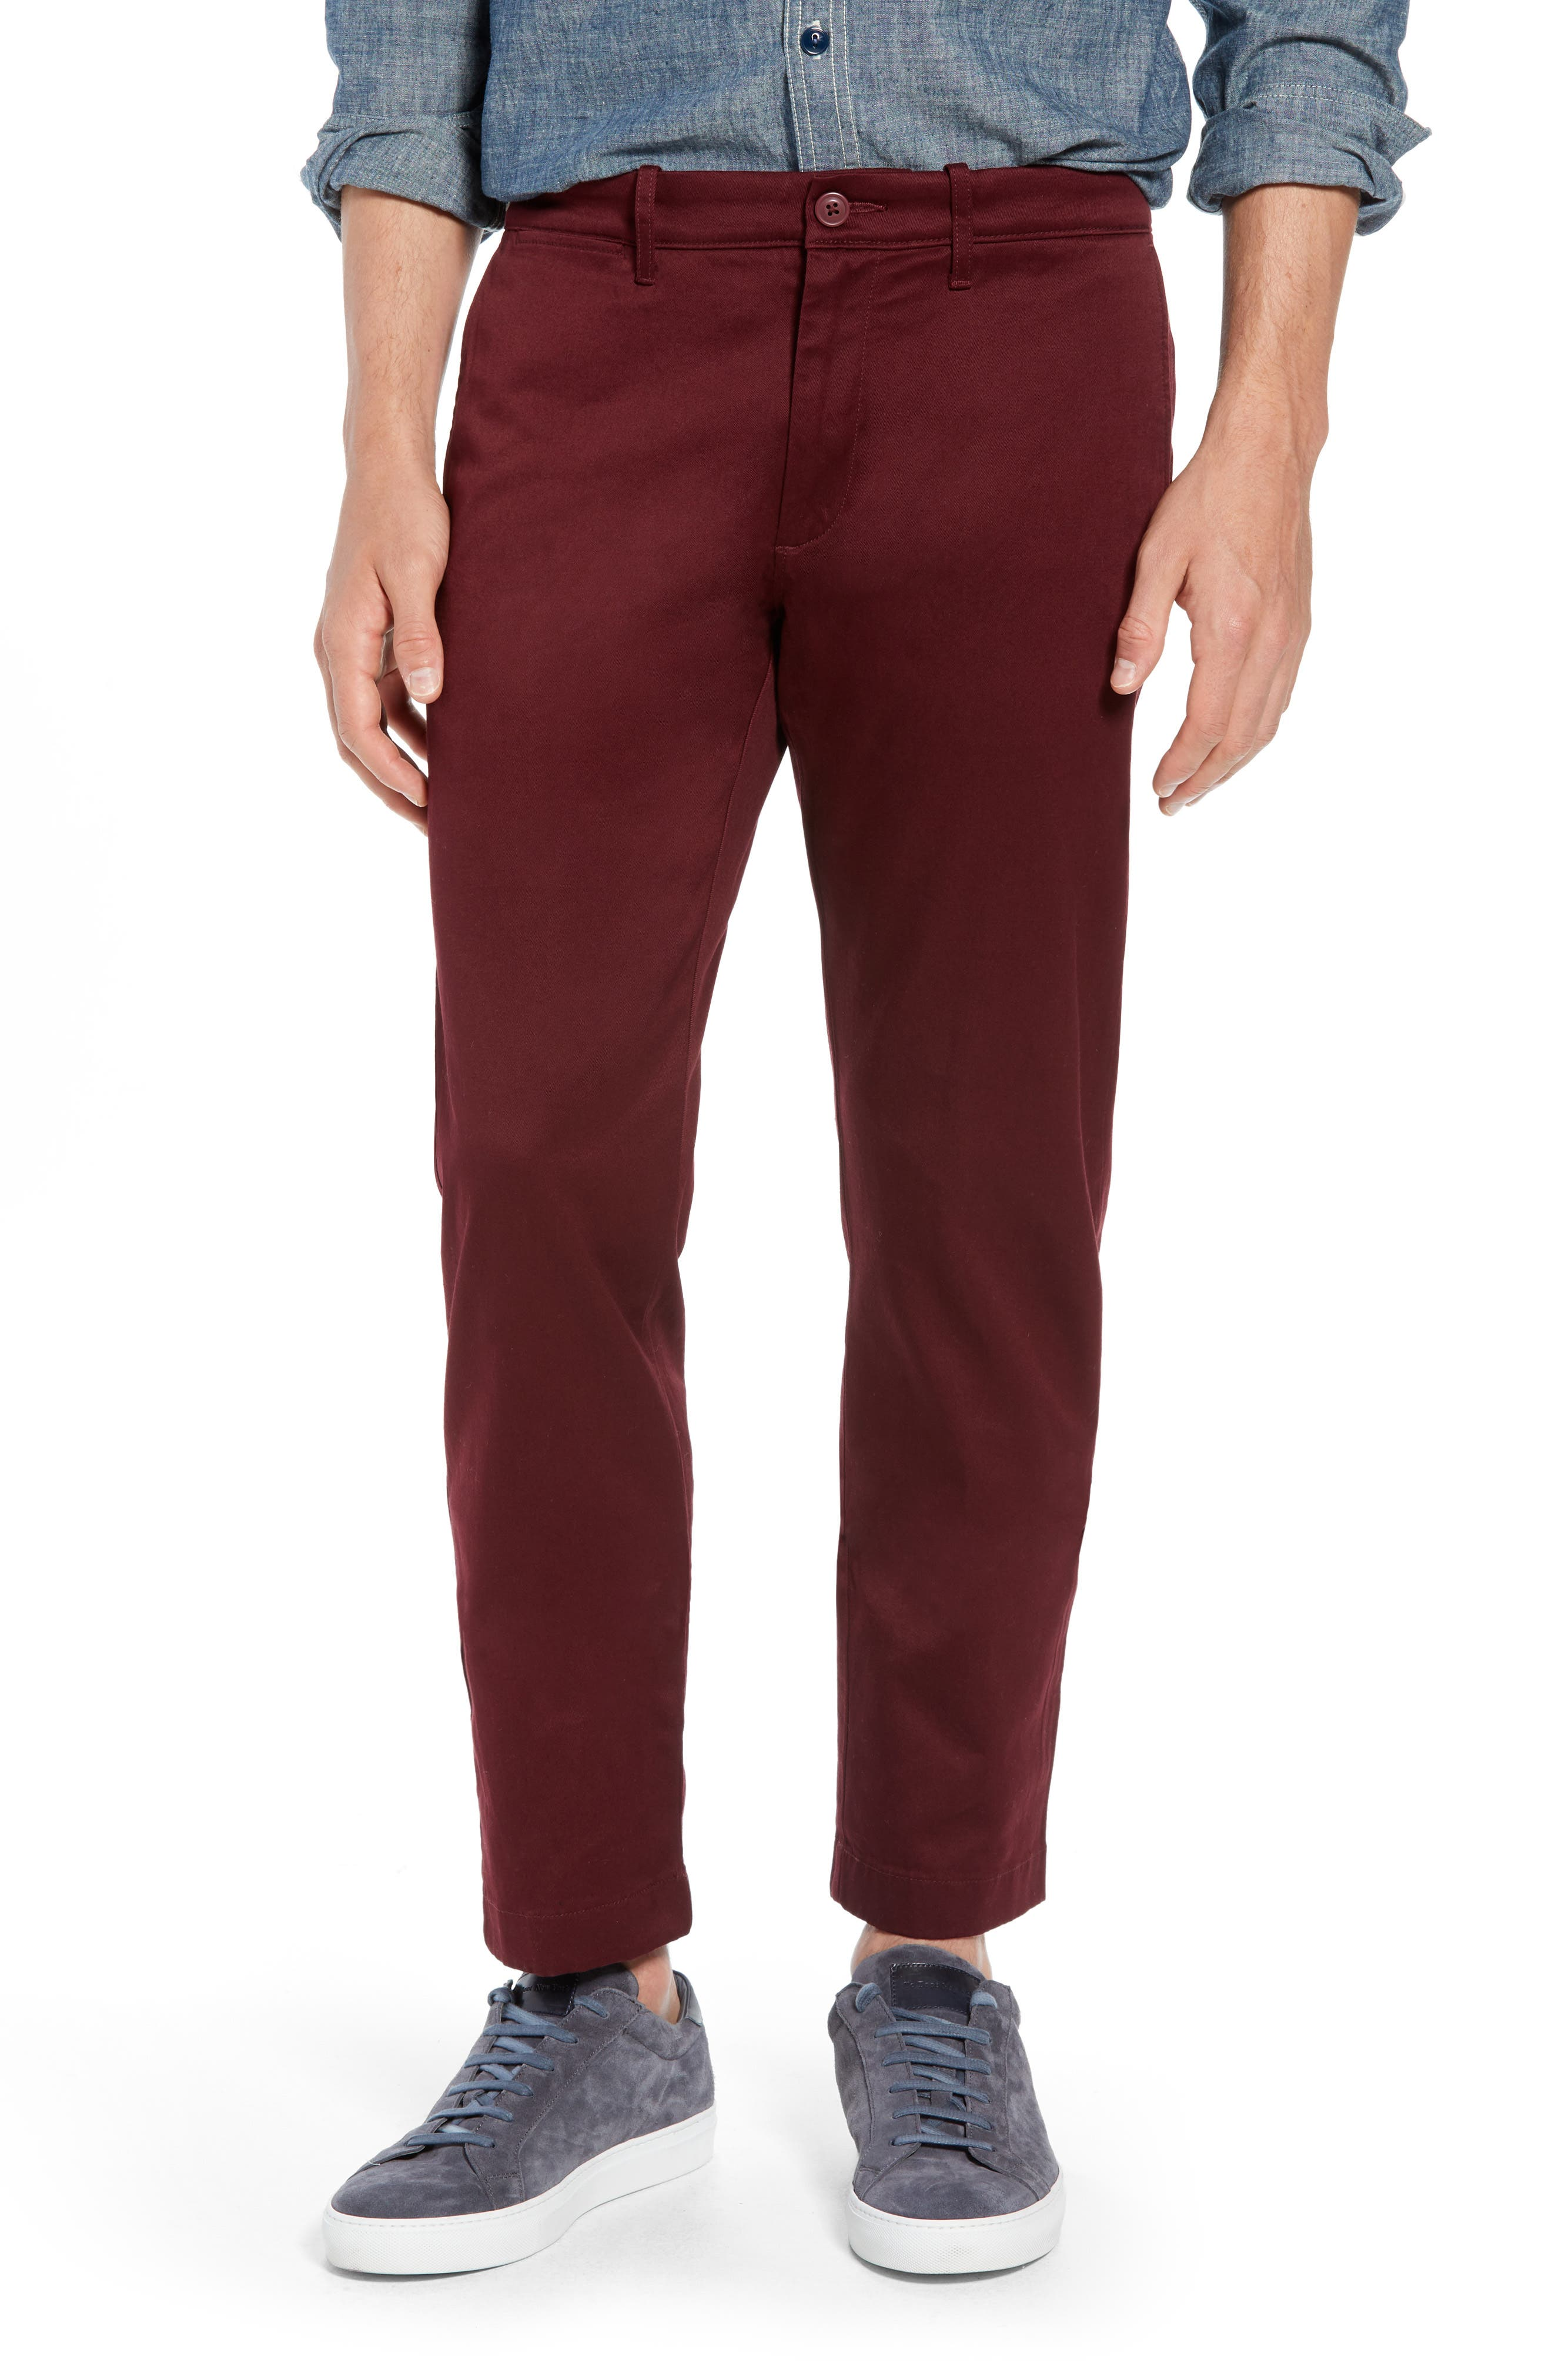 484 Slim Fit Stretch Chino Pants,                             Main thumbnail 12, color,